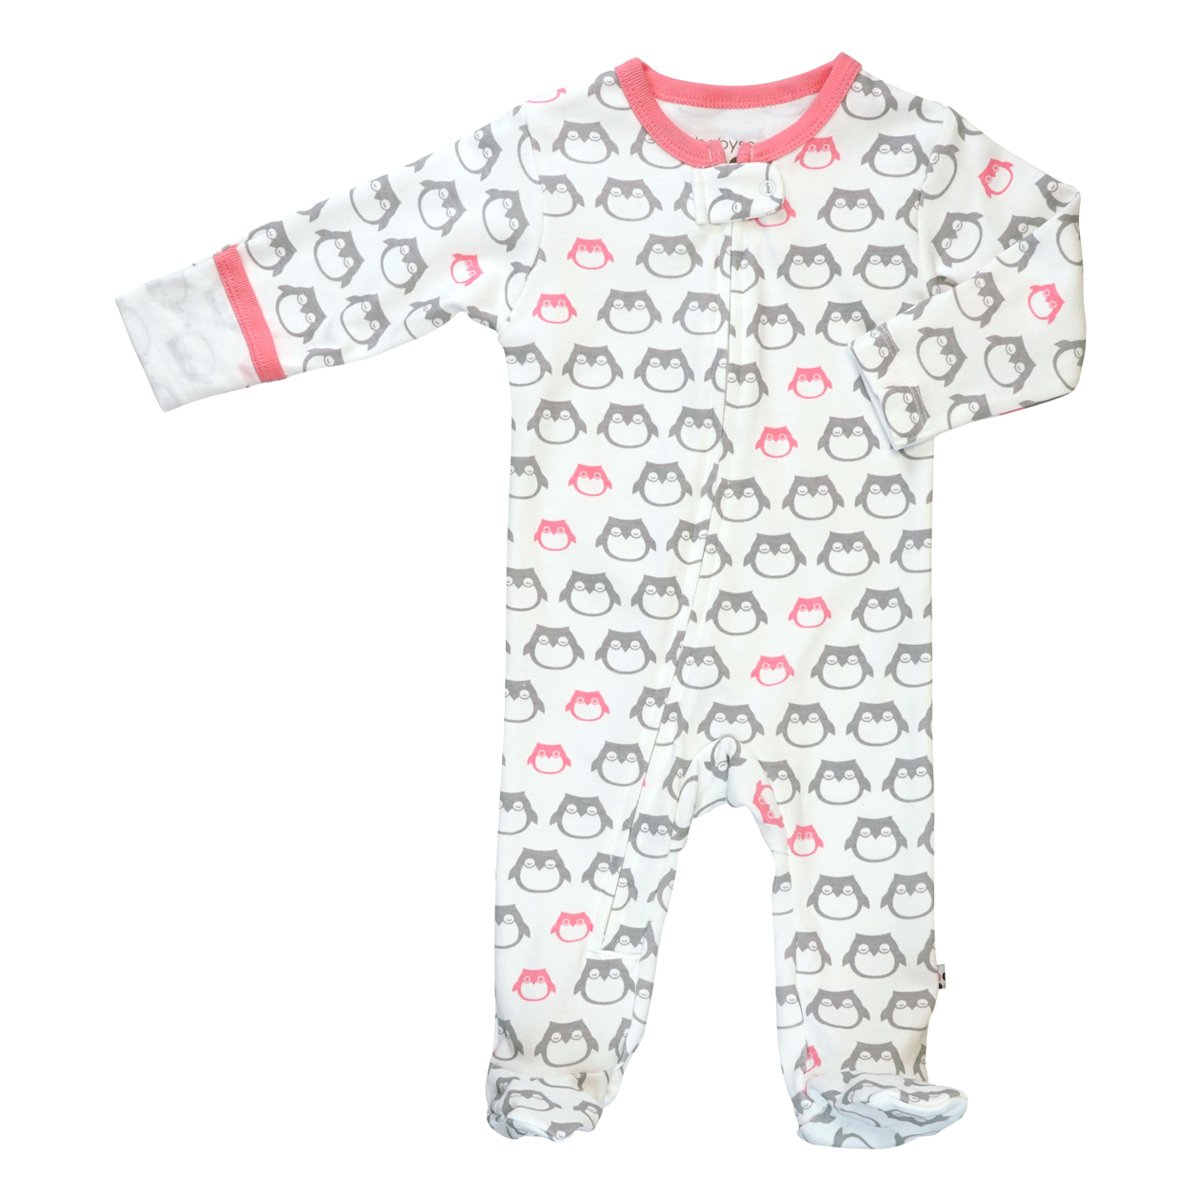 大人気新作 Babysoy Lemon SLEEPWEAR - ユニセックスベビー - B01MRSEIEH Owl/Pink Lemon 0 - 3 Months 0 - 3 Months|Owl/Pink Lemon, Being 【ビーイング】:3b5c5929 --- vanhavertotgracht.nl